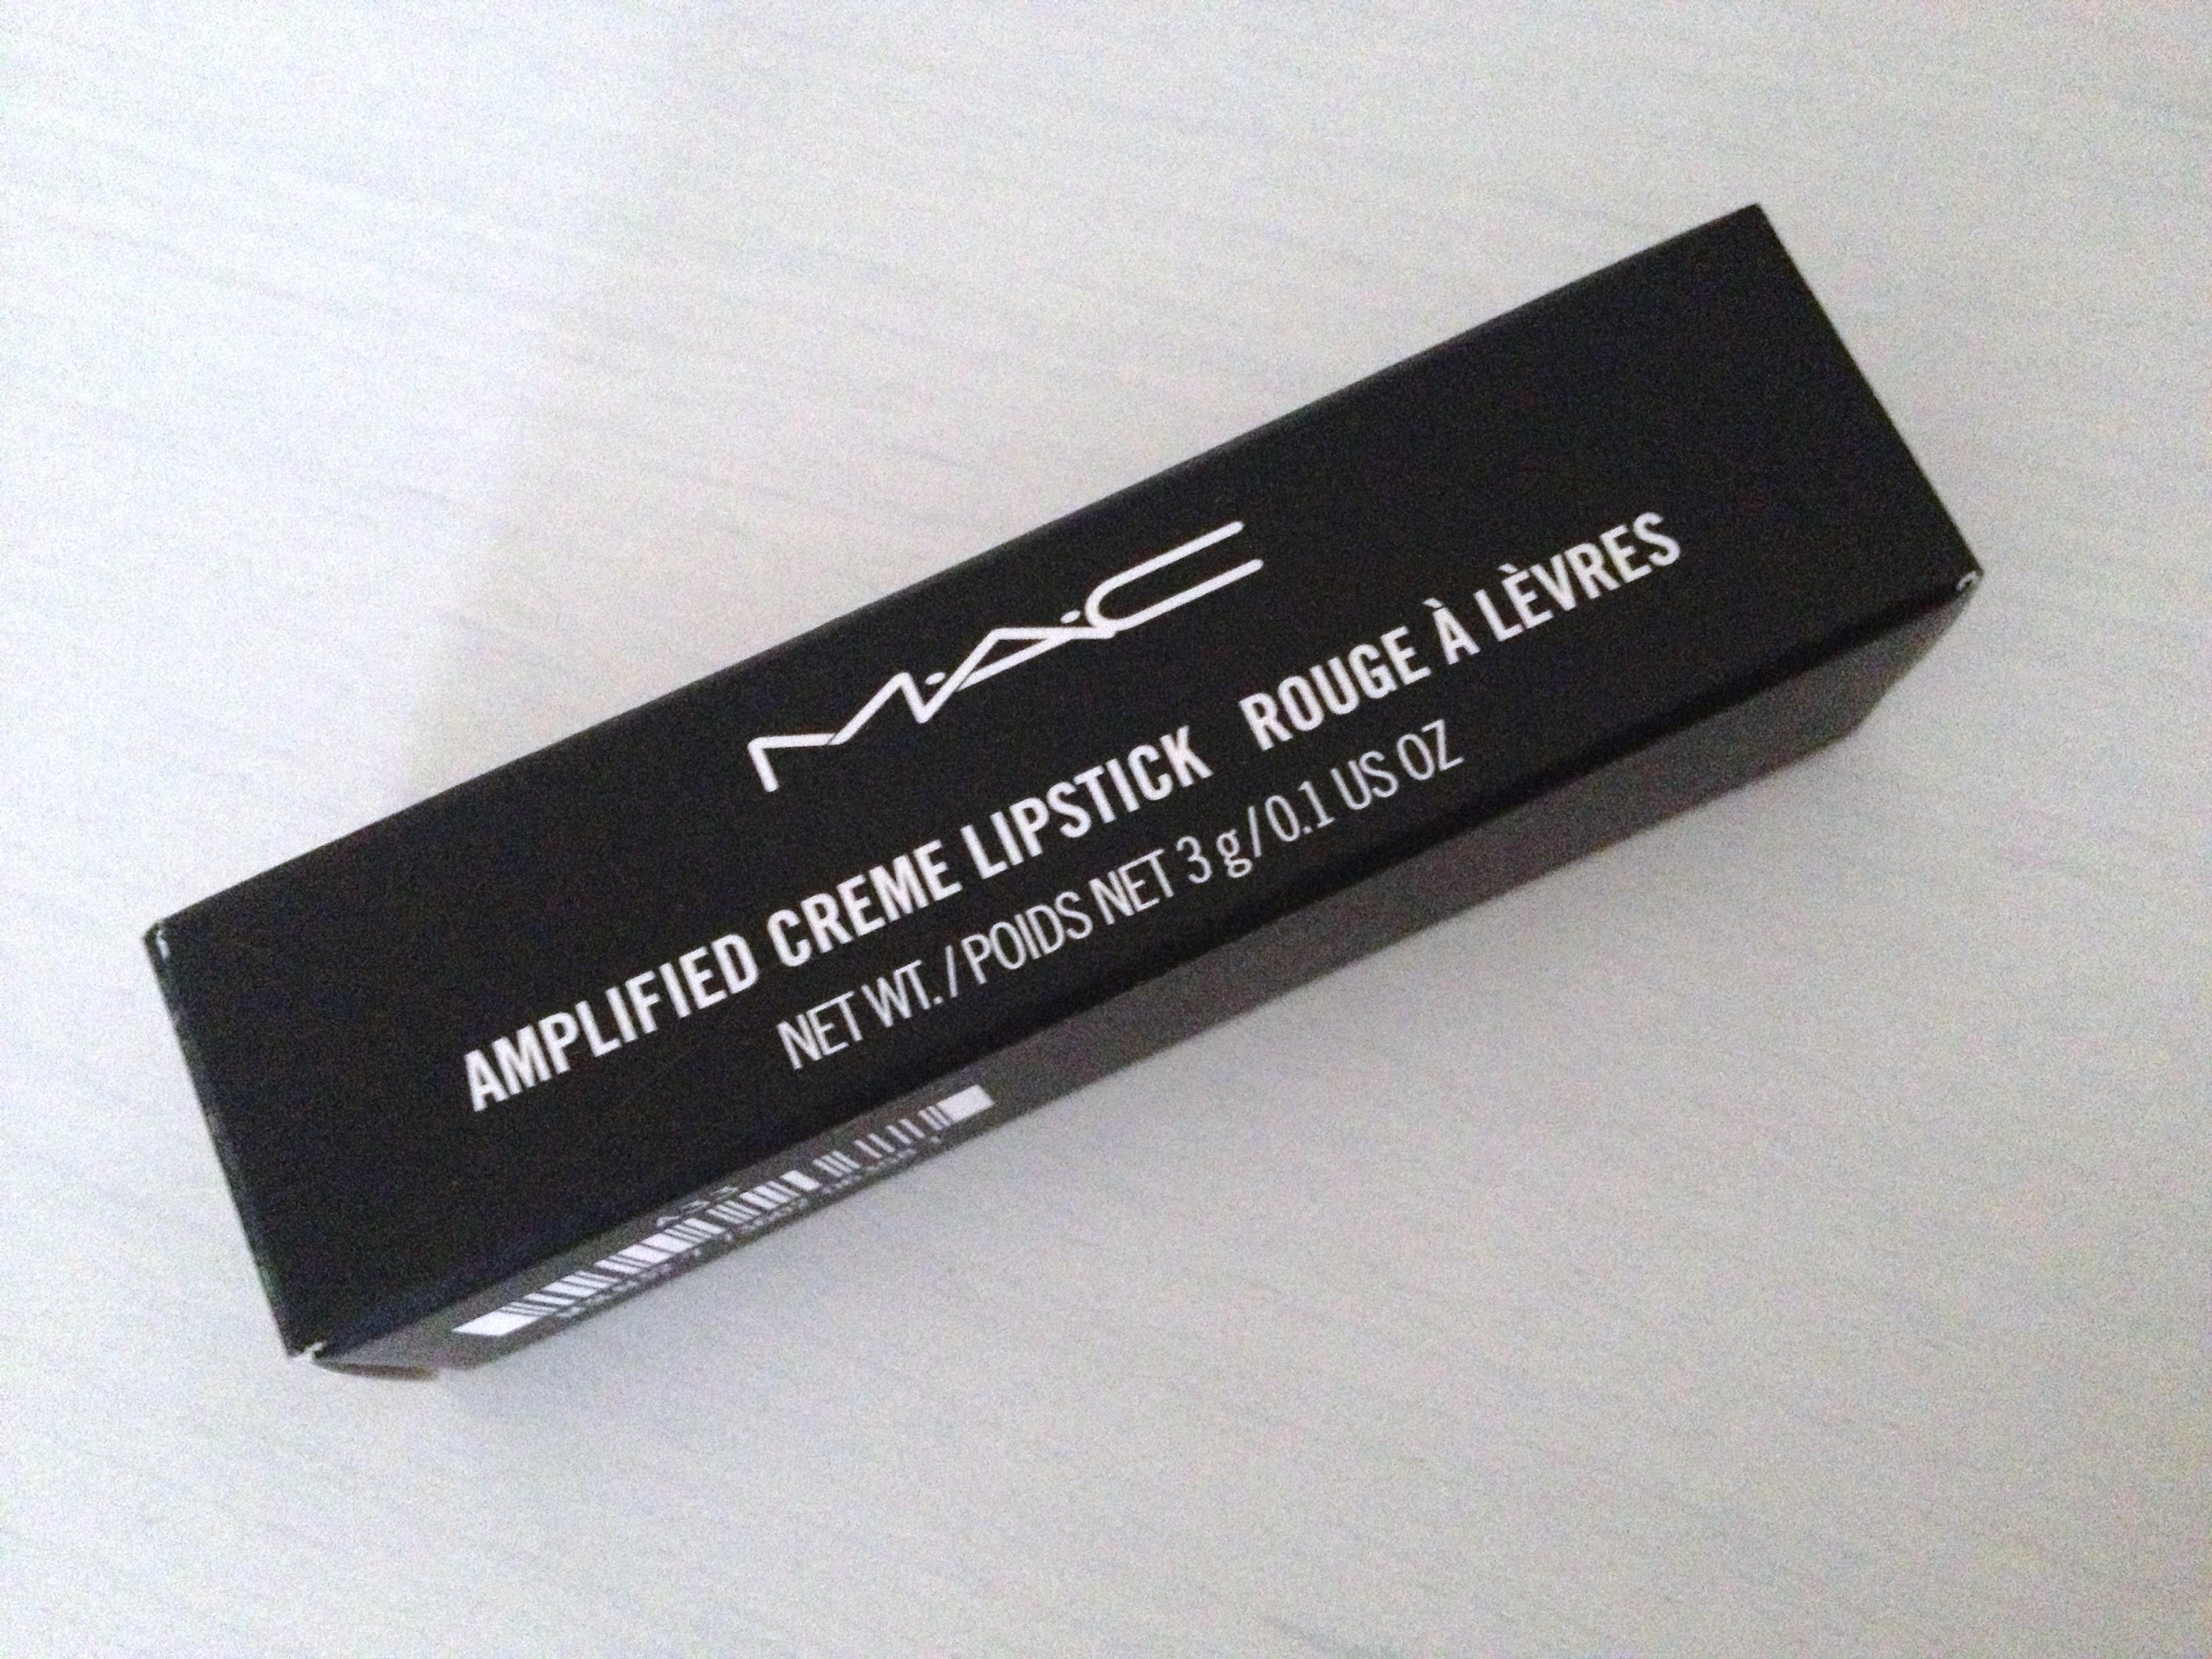 MAC_Amplified_Creme_Sheen_Lipstick_'Chatterbox' (5)